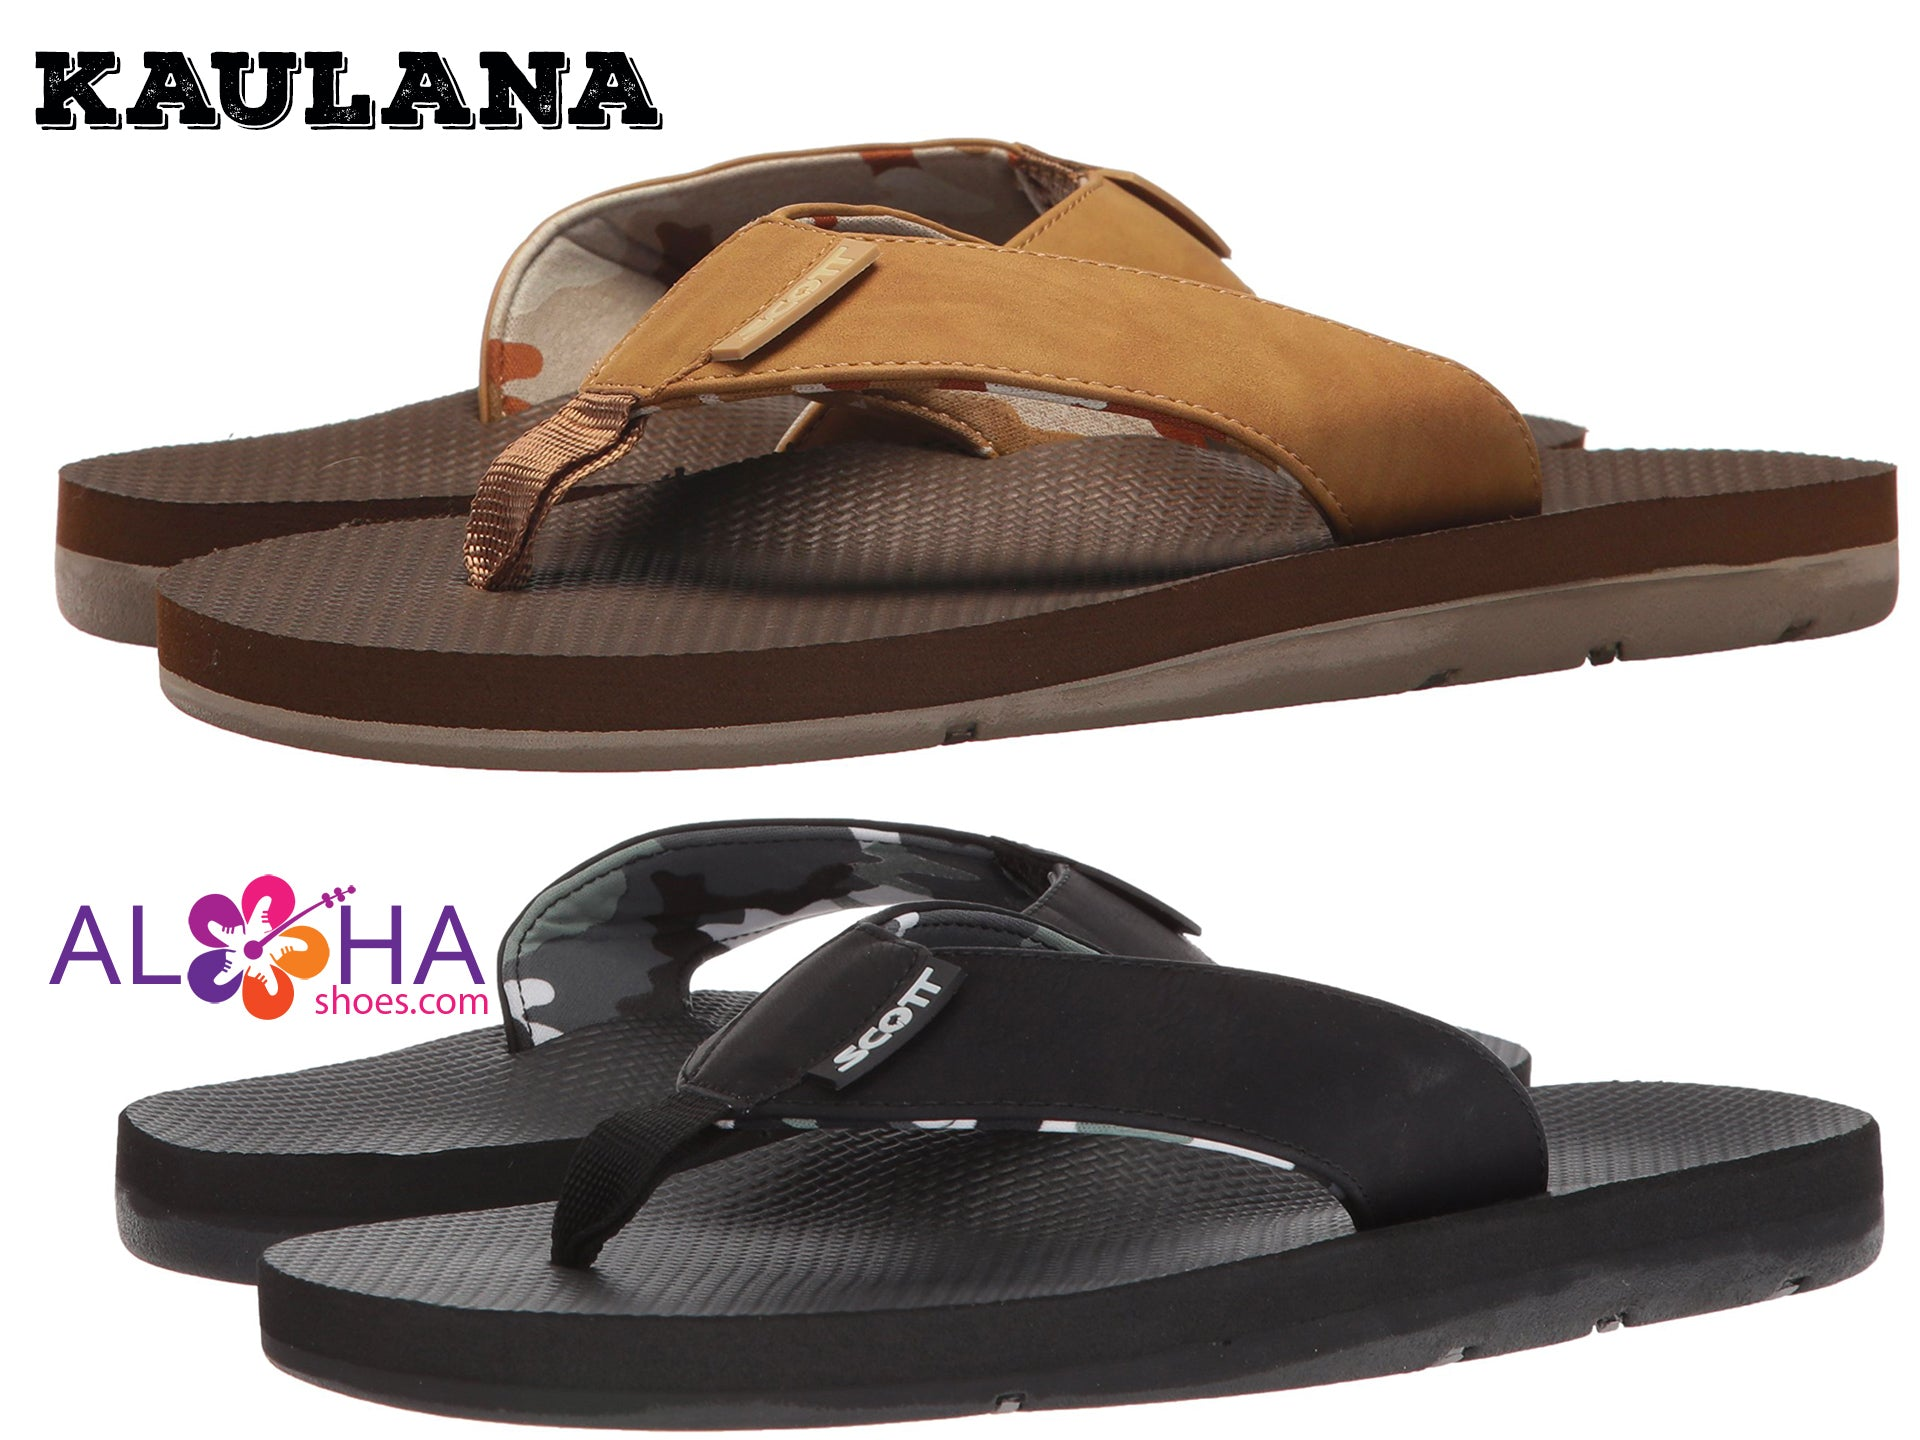 Kaulana PU Leather Sandal | Dual Neoprene Designed Straps - AlohaShoes.com